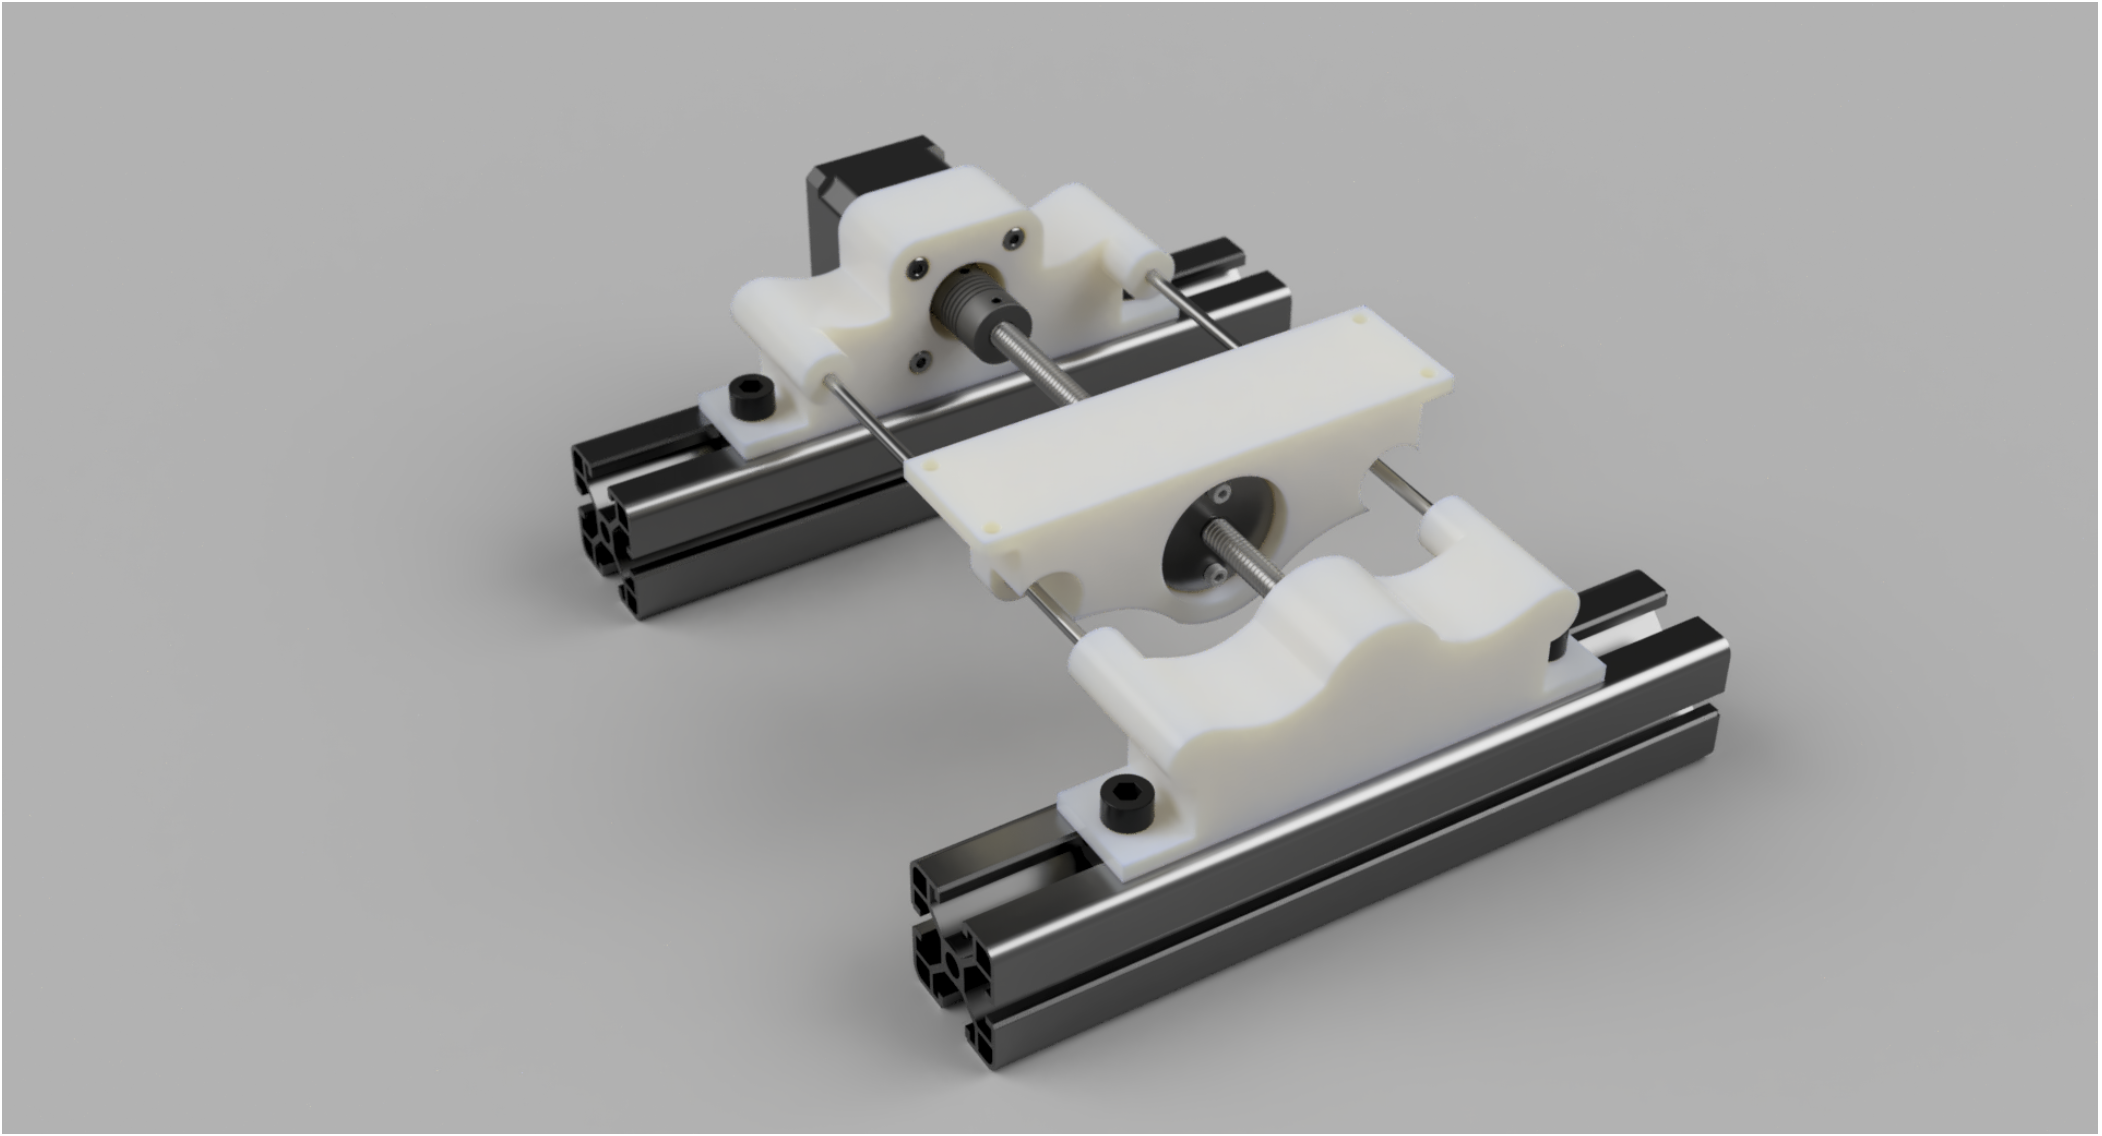 Render of the Y-Axis